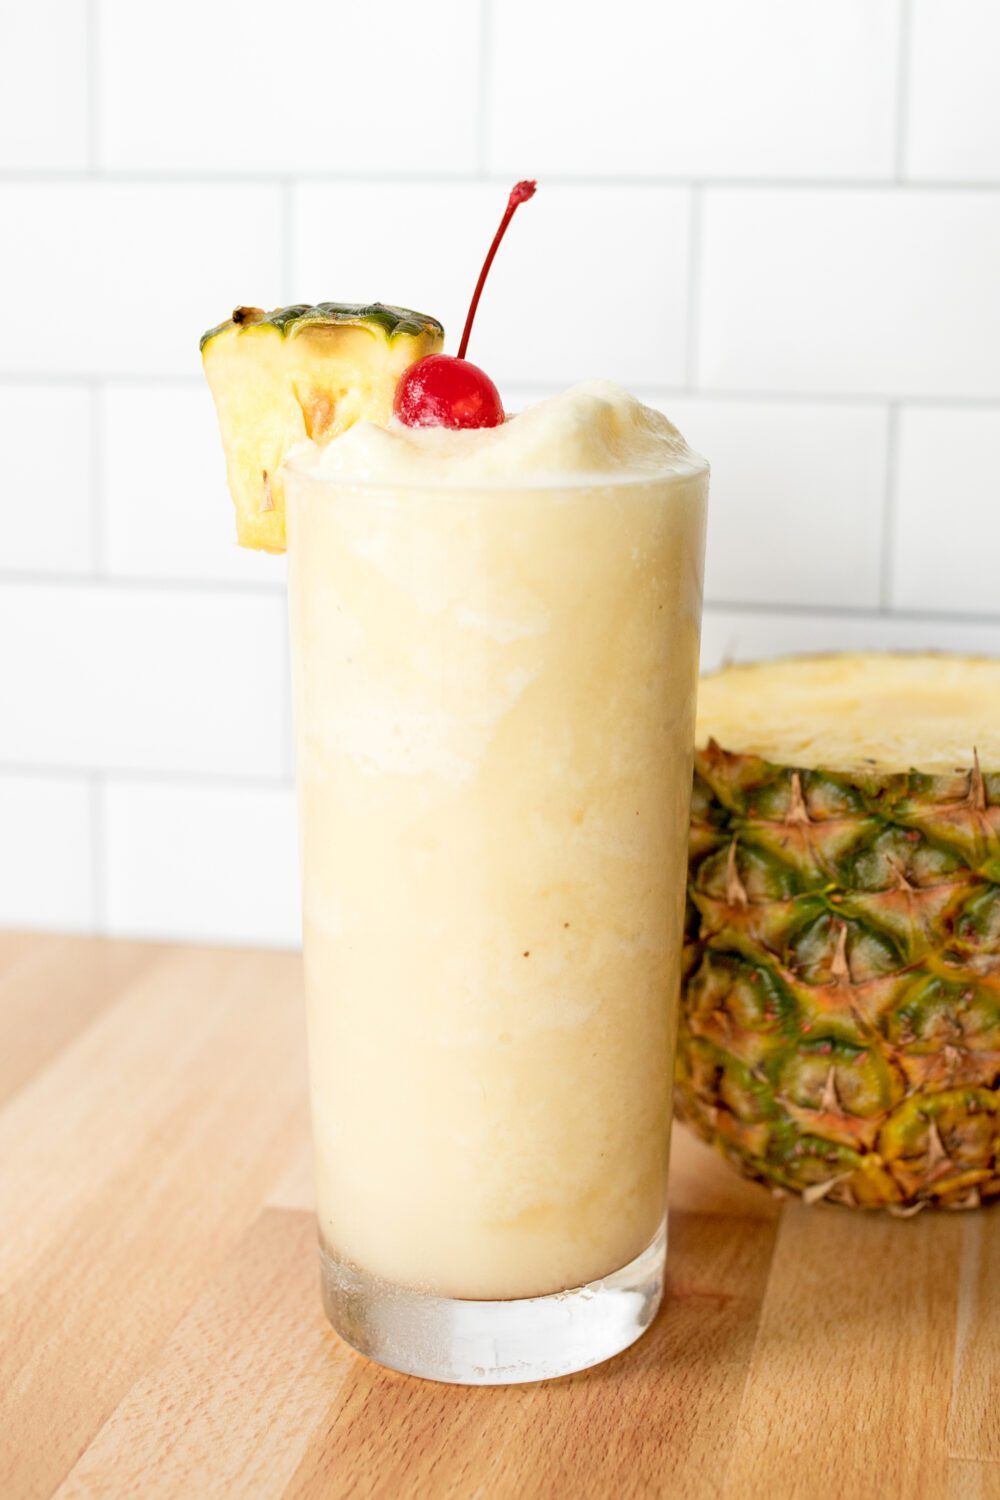 non-alcoholic piña colada with cherry and pineapple garnishes next to a pineapple